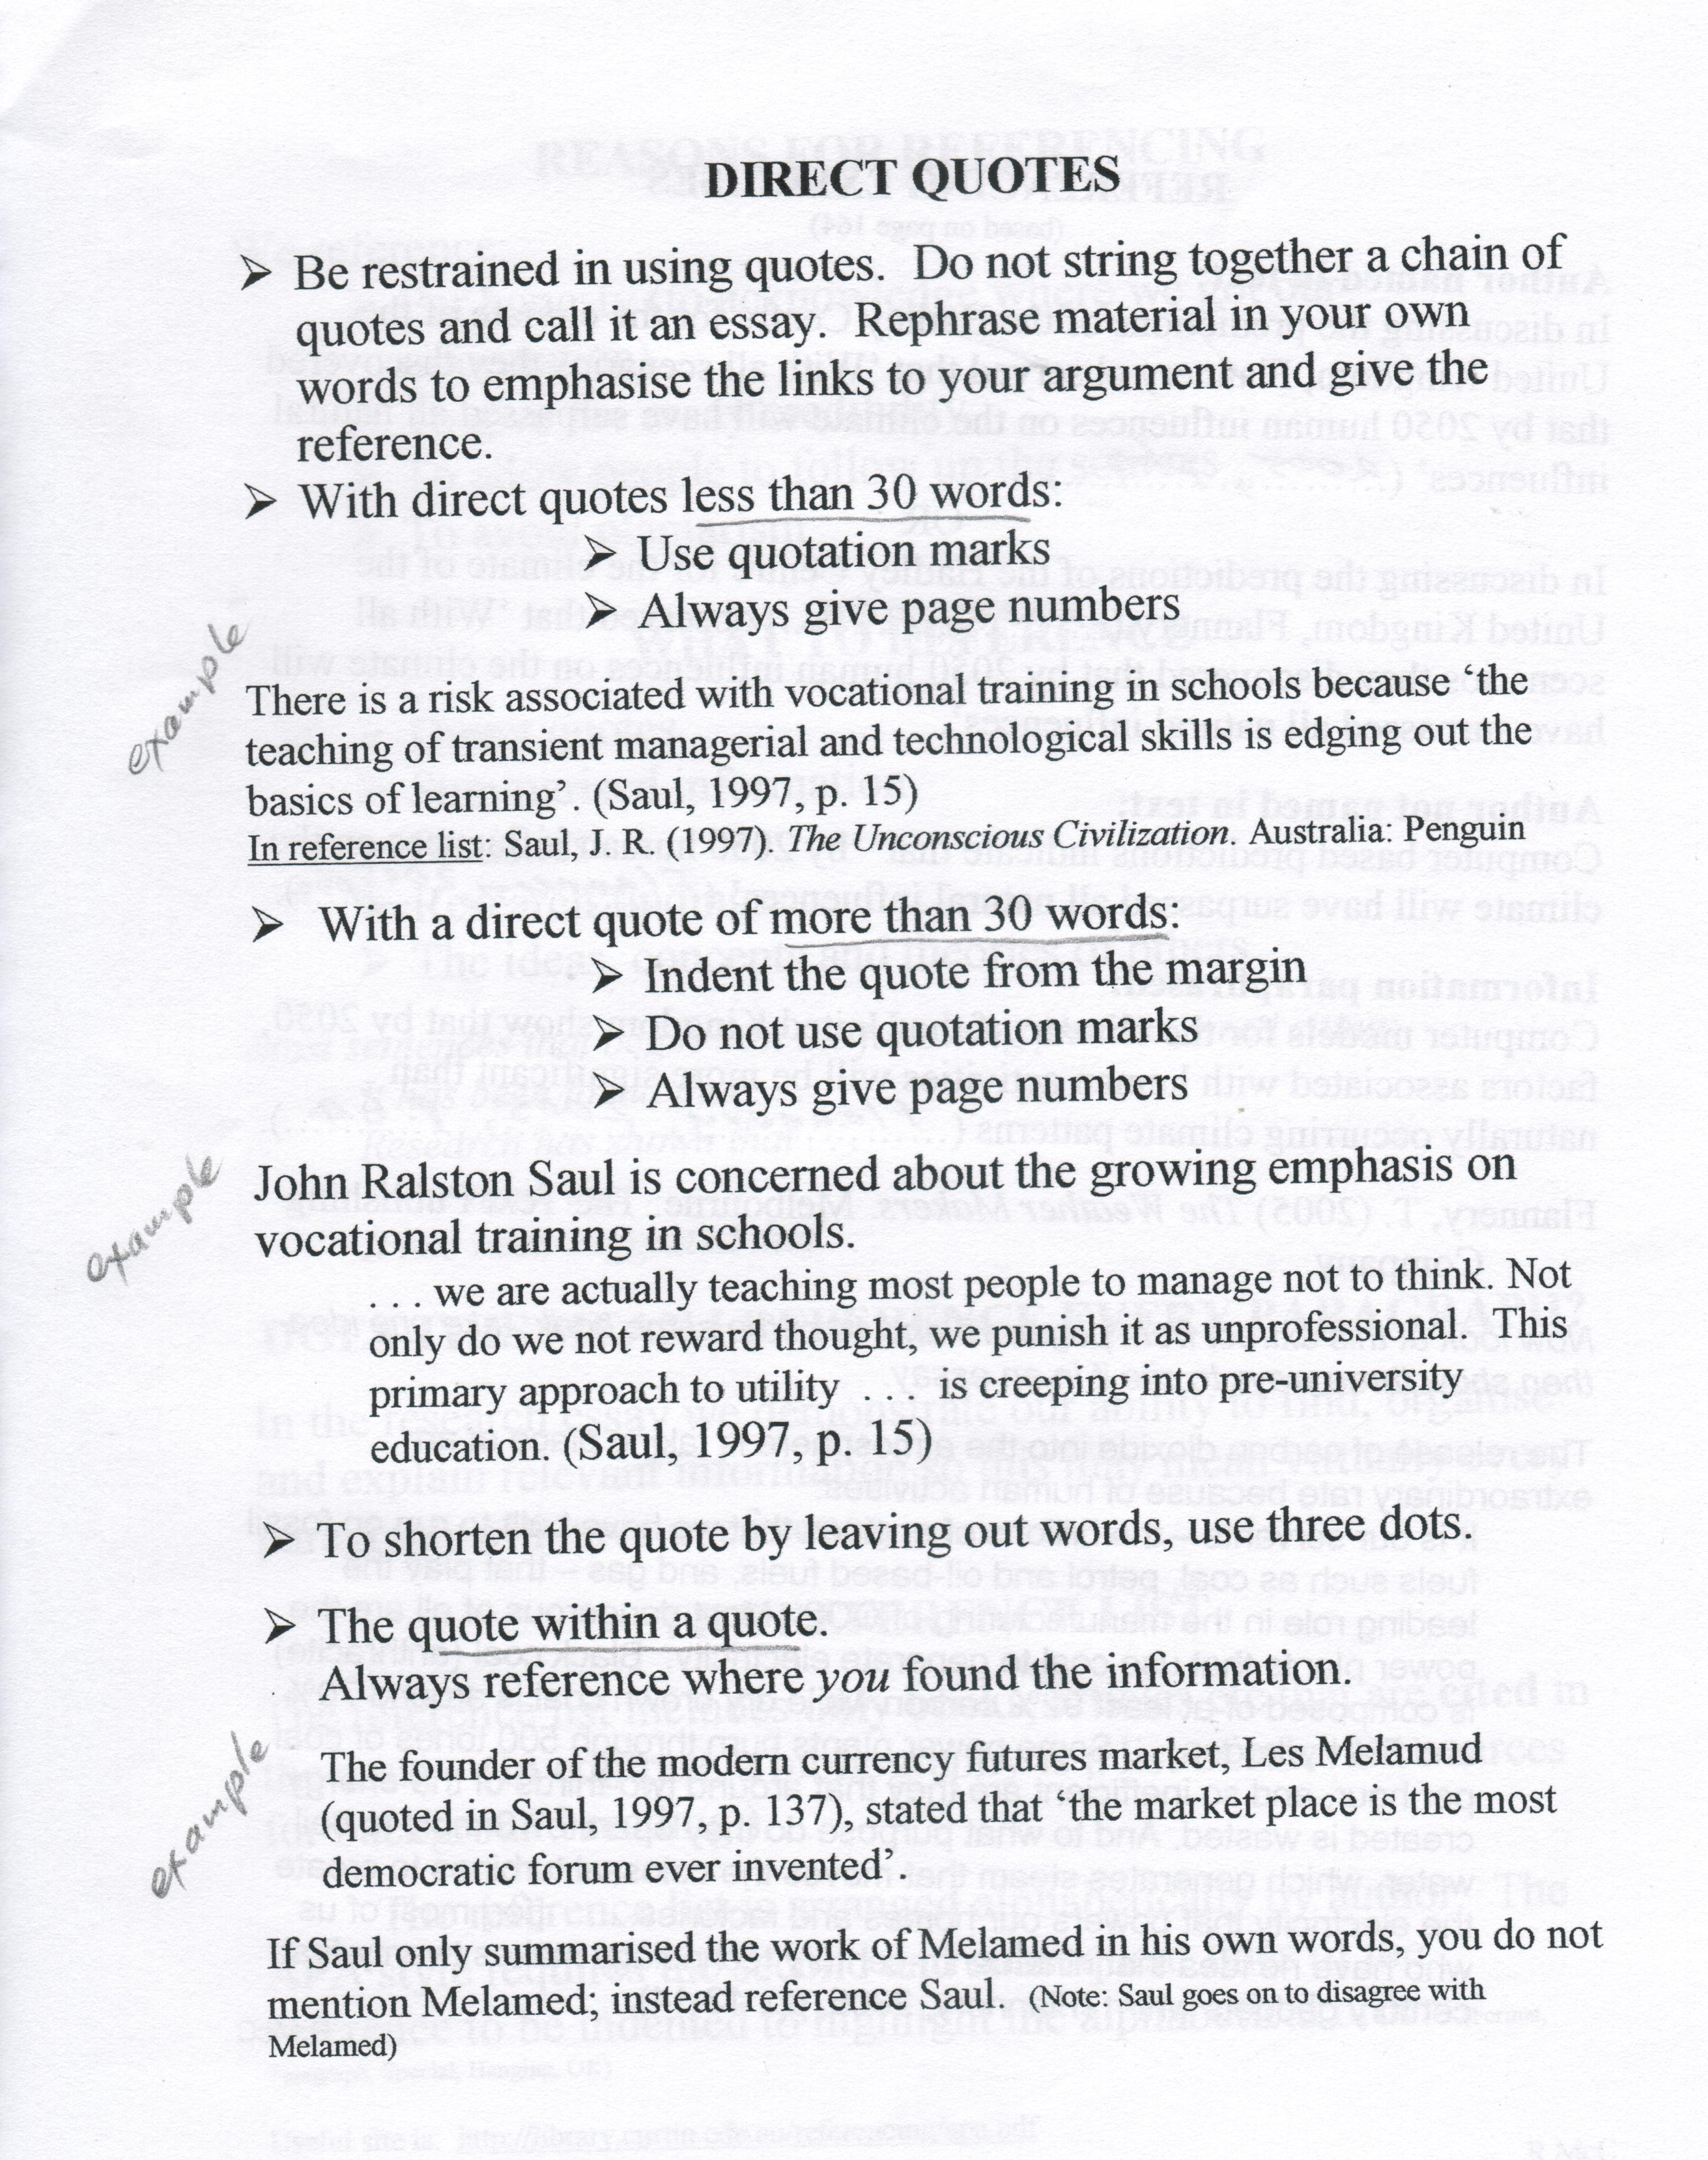 016 Direct Quotes How To Write An Essay With Imposing In Mla Integrate Quotations Writing Essays-apa Or Include A Quote Apa Full